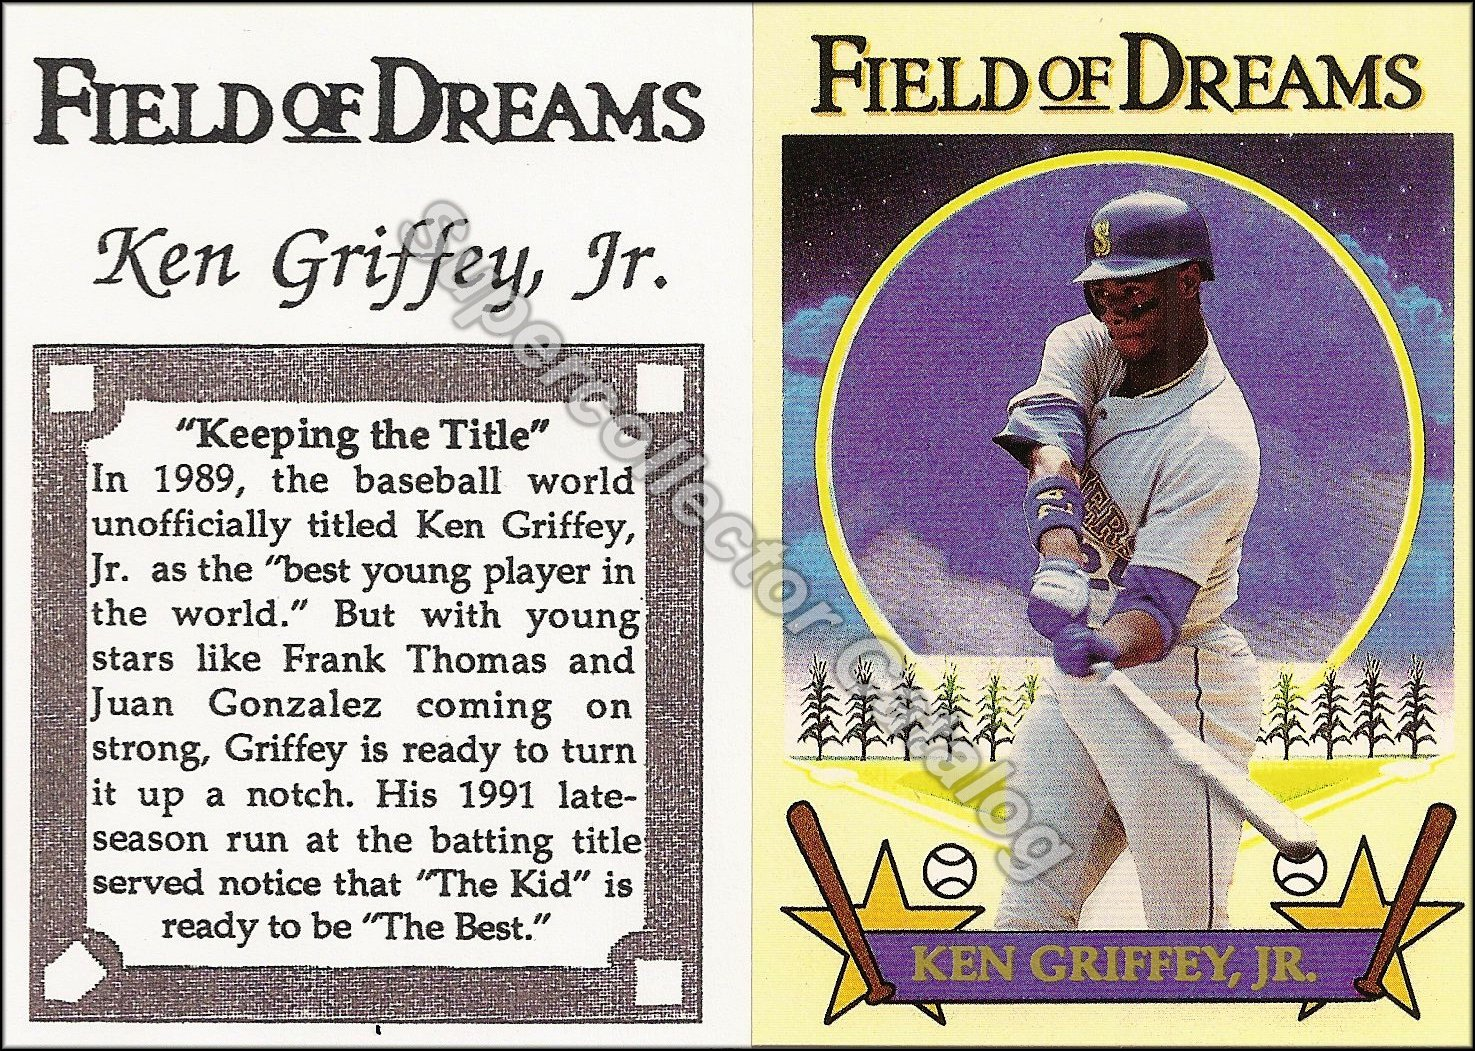 1992 Field of Dreams